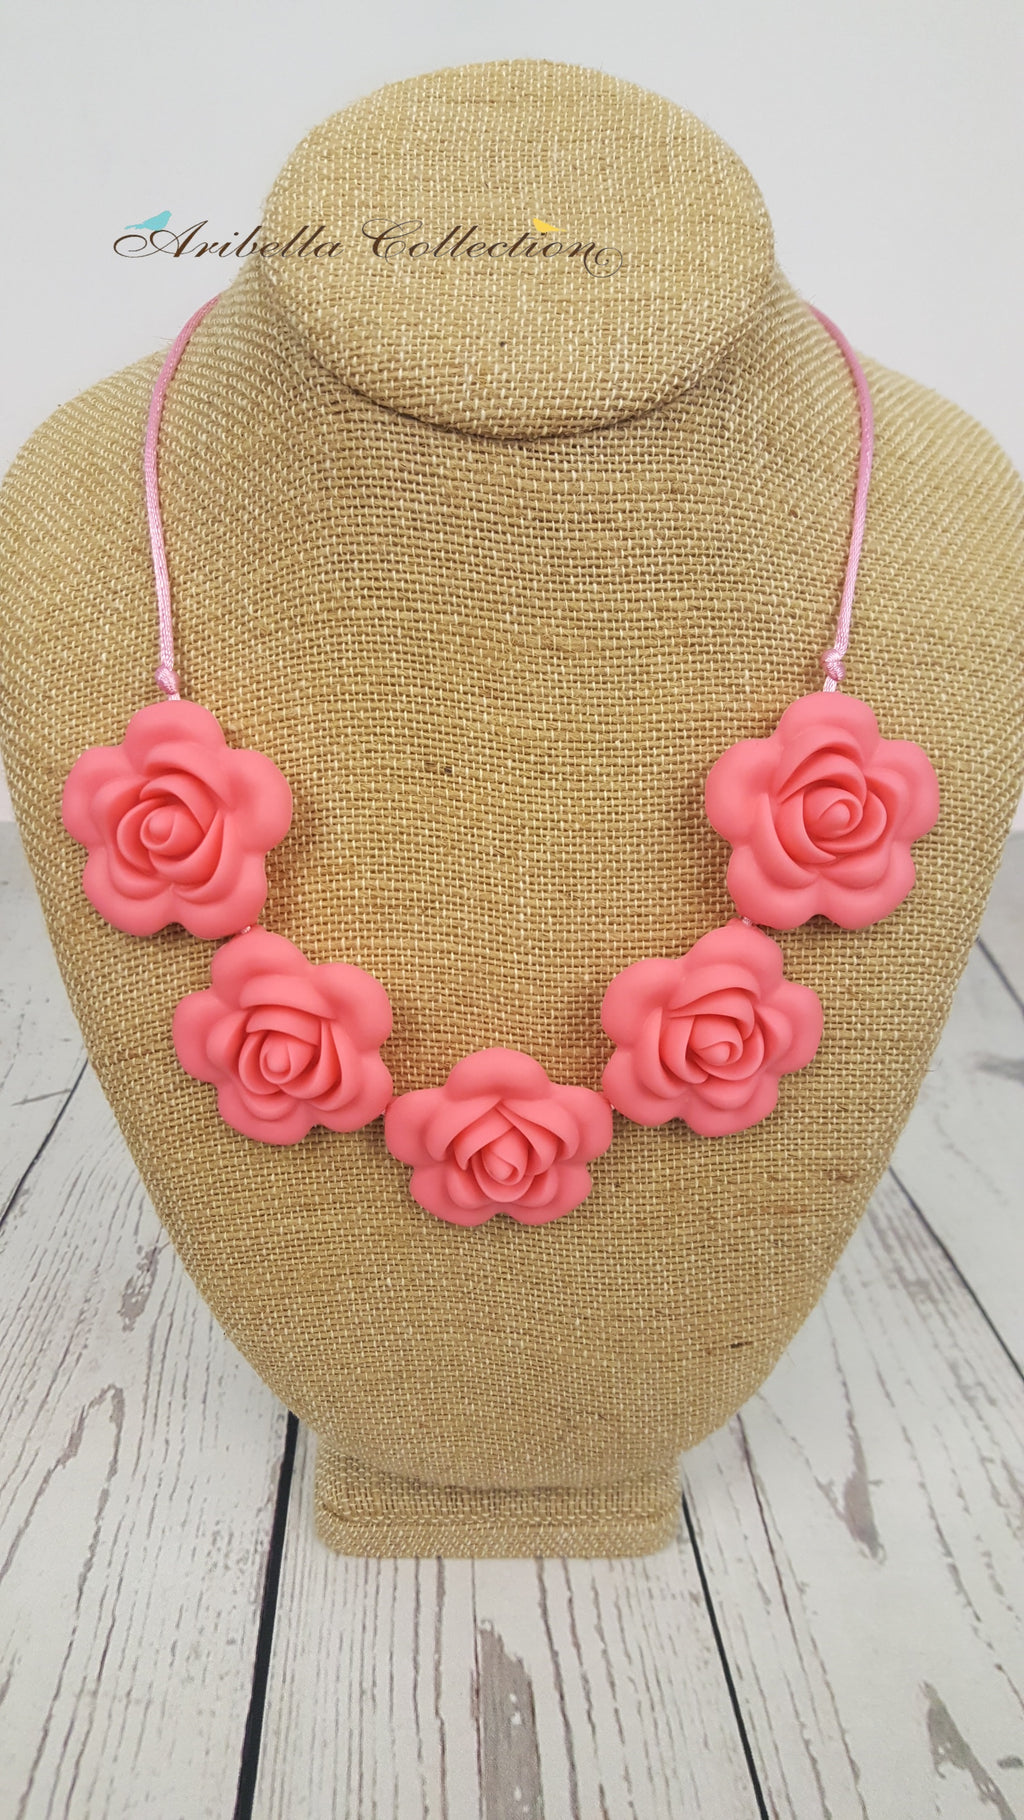 Silicone Necklace - Peach Flower - Aribella Collection